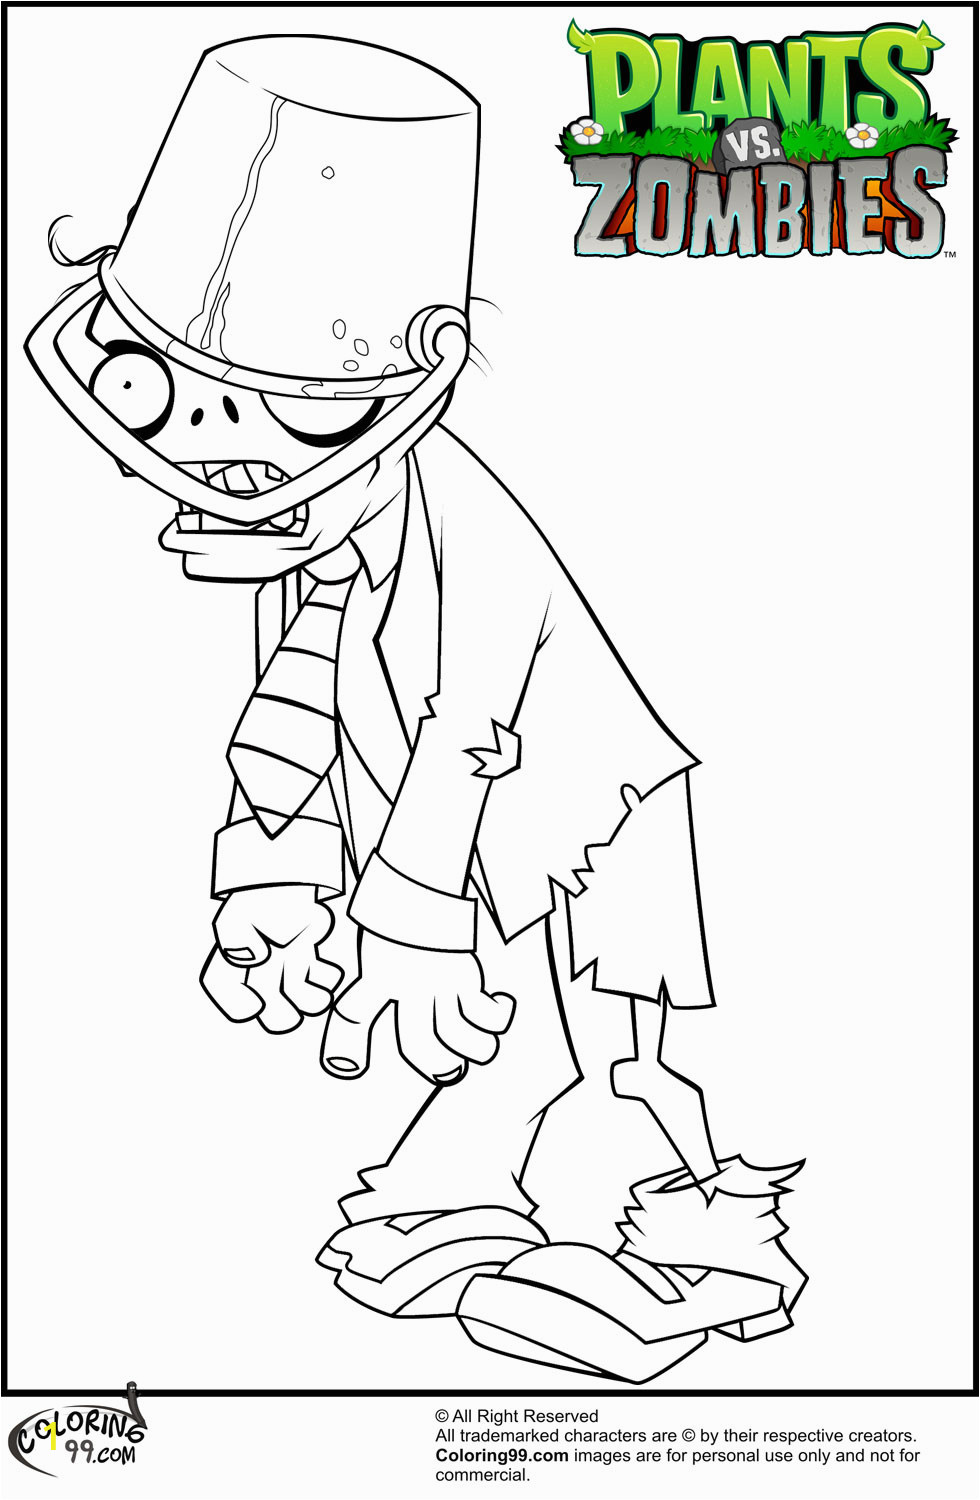 Plants Vs Zombies 2 Coloring Pages Plants Vs Zombies Garden Warfare 2 Free Coloring Pages